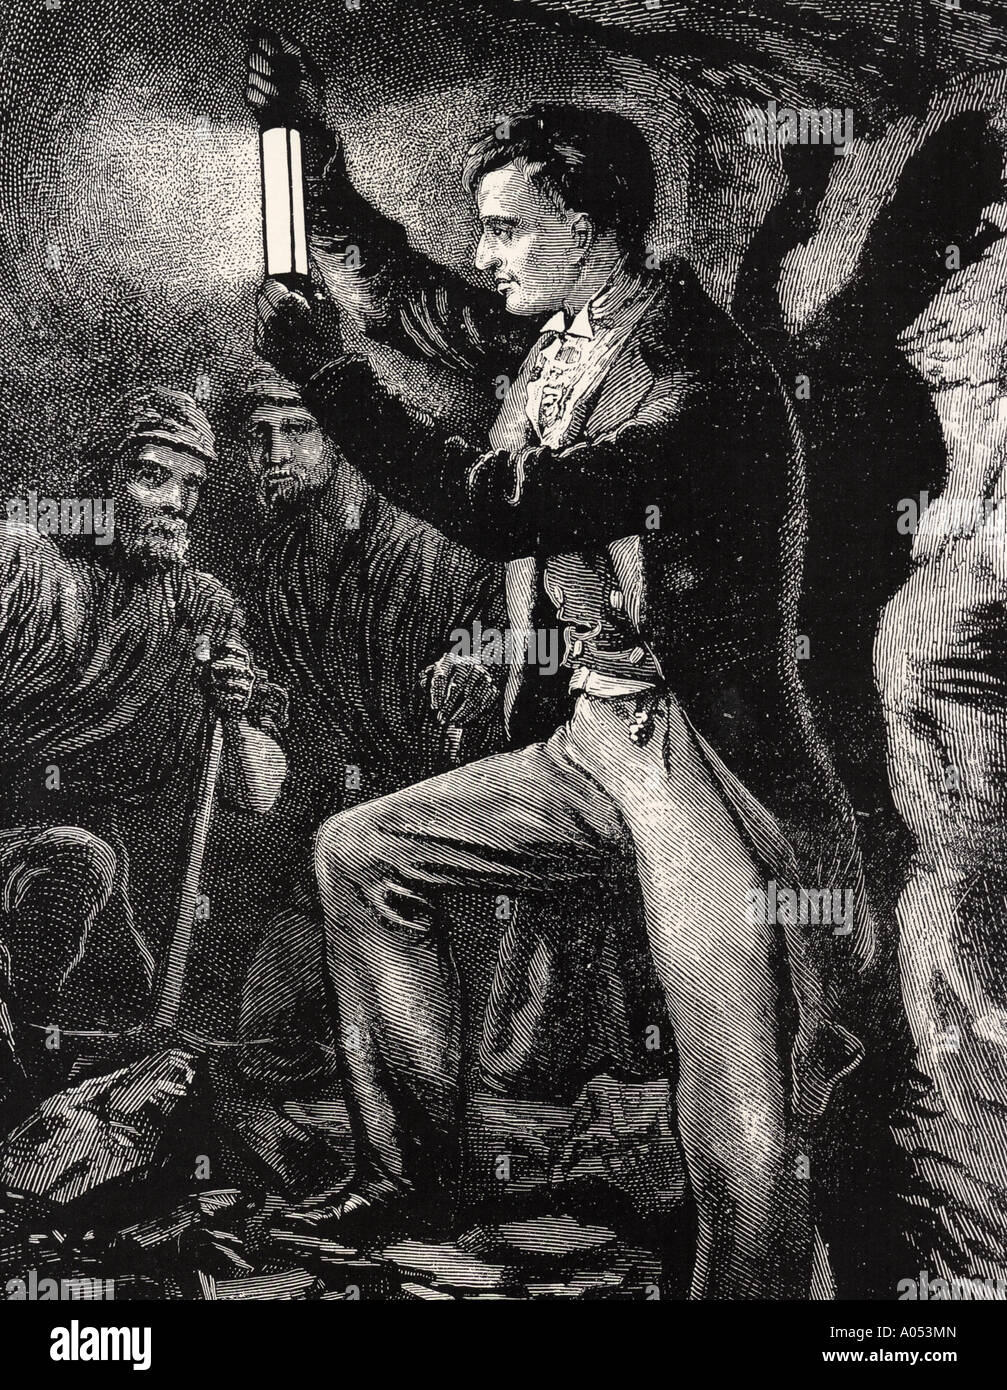 SIR HUMPHREY DAVY 1778 to 1829. English chemist in 1815 with his revolutionary safety lamp for miners - Stock Image